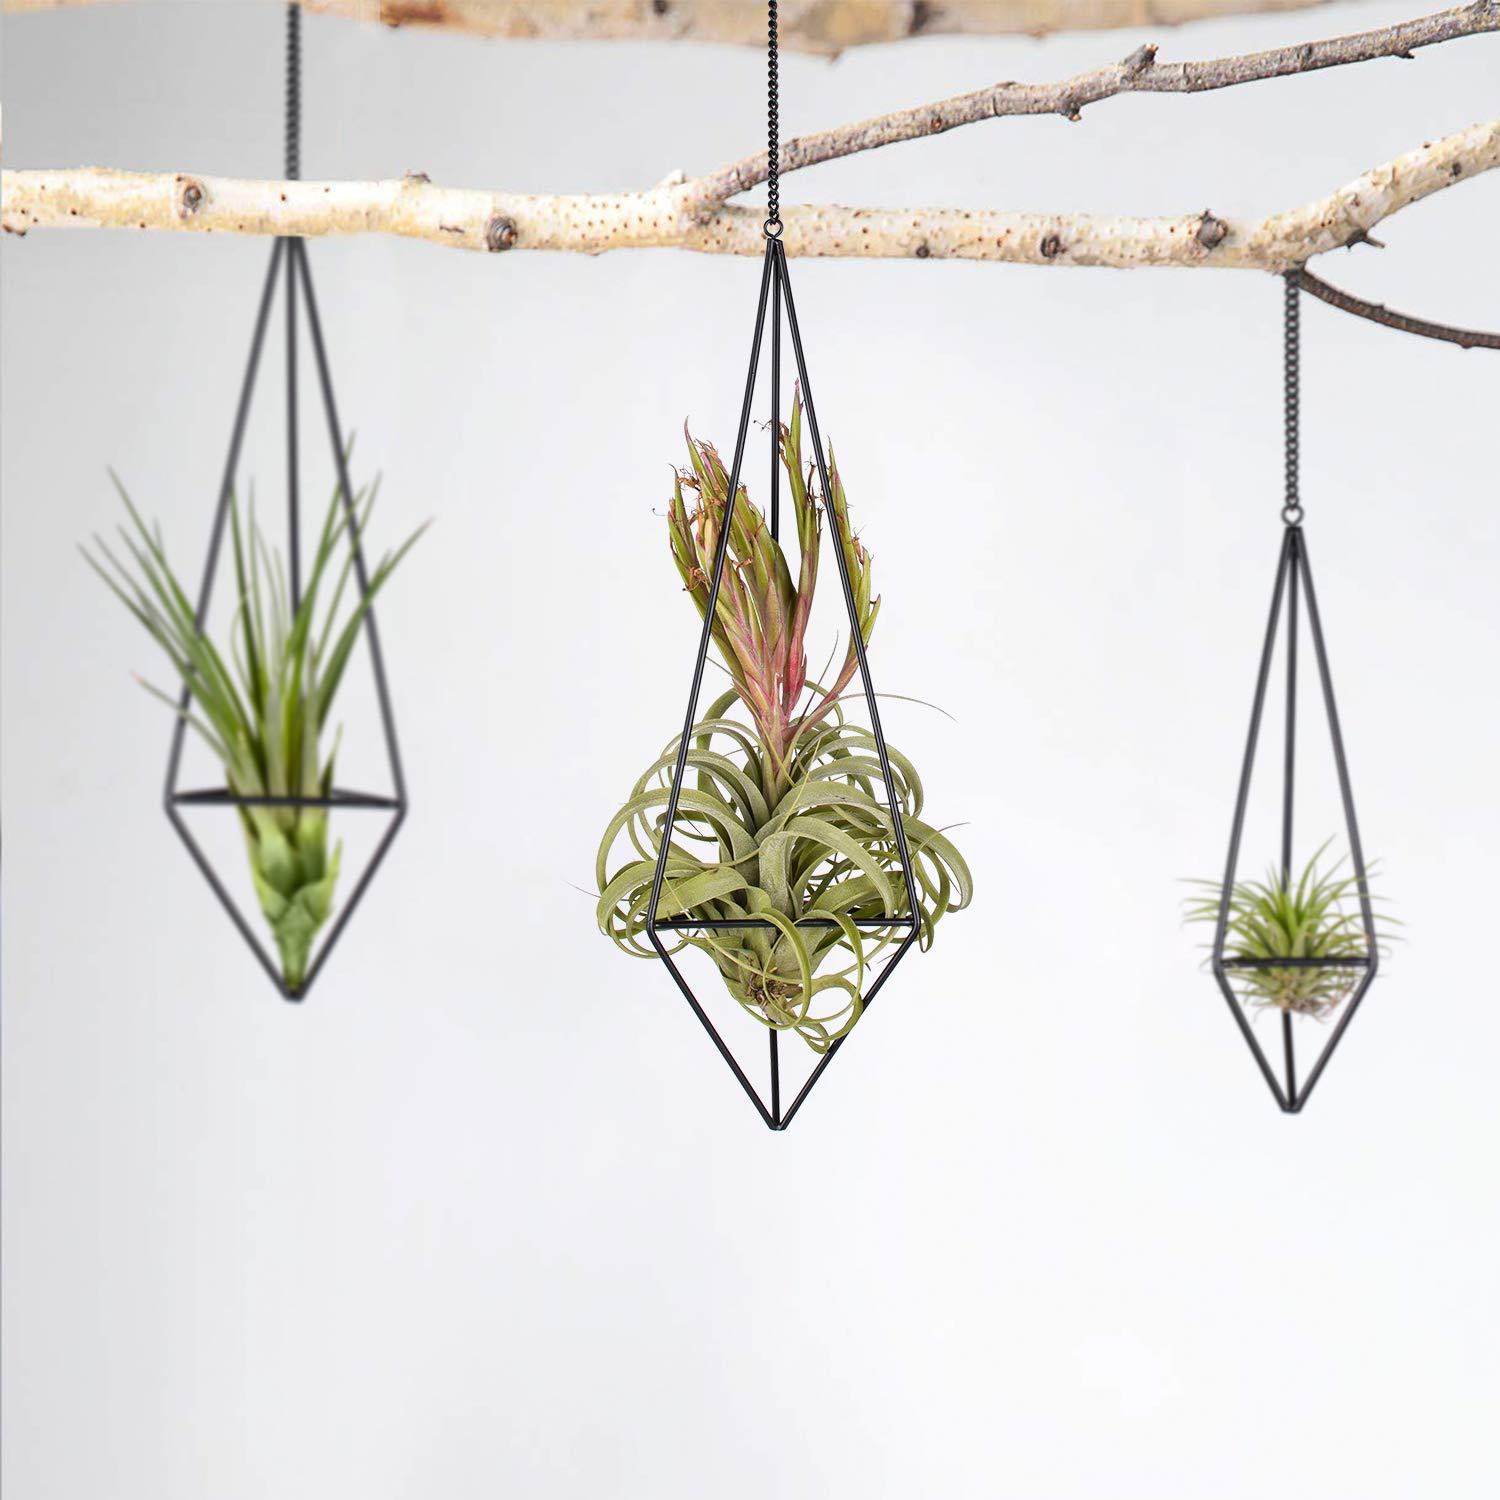 Pack 3 Black Metal Hanging Air Plant Holder, Gemometric Plant Planter Holder with Chains Home Decor, Quadrilateral Pyramid Shape Geometric Hollow Flower Pots in Mixed Sizes